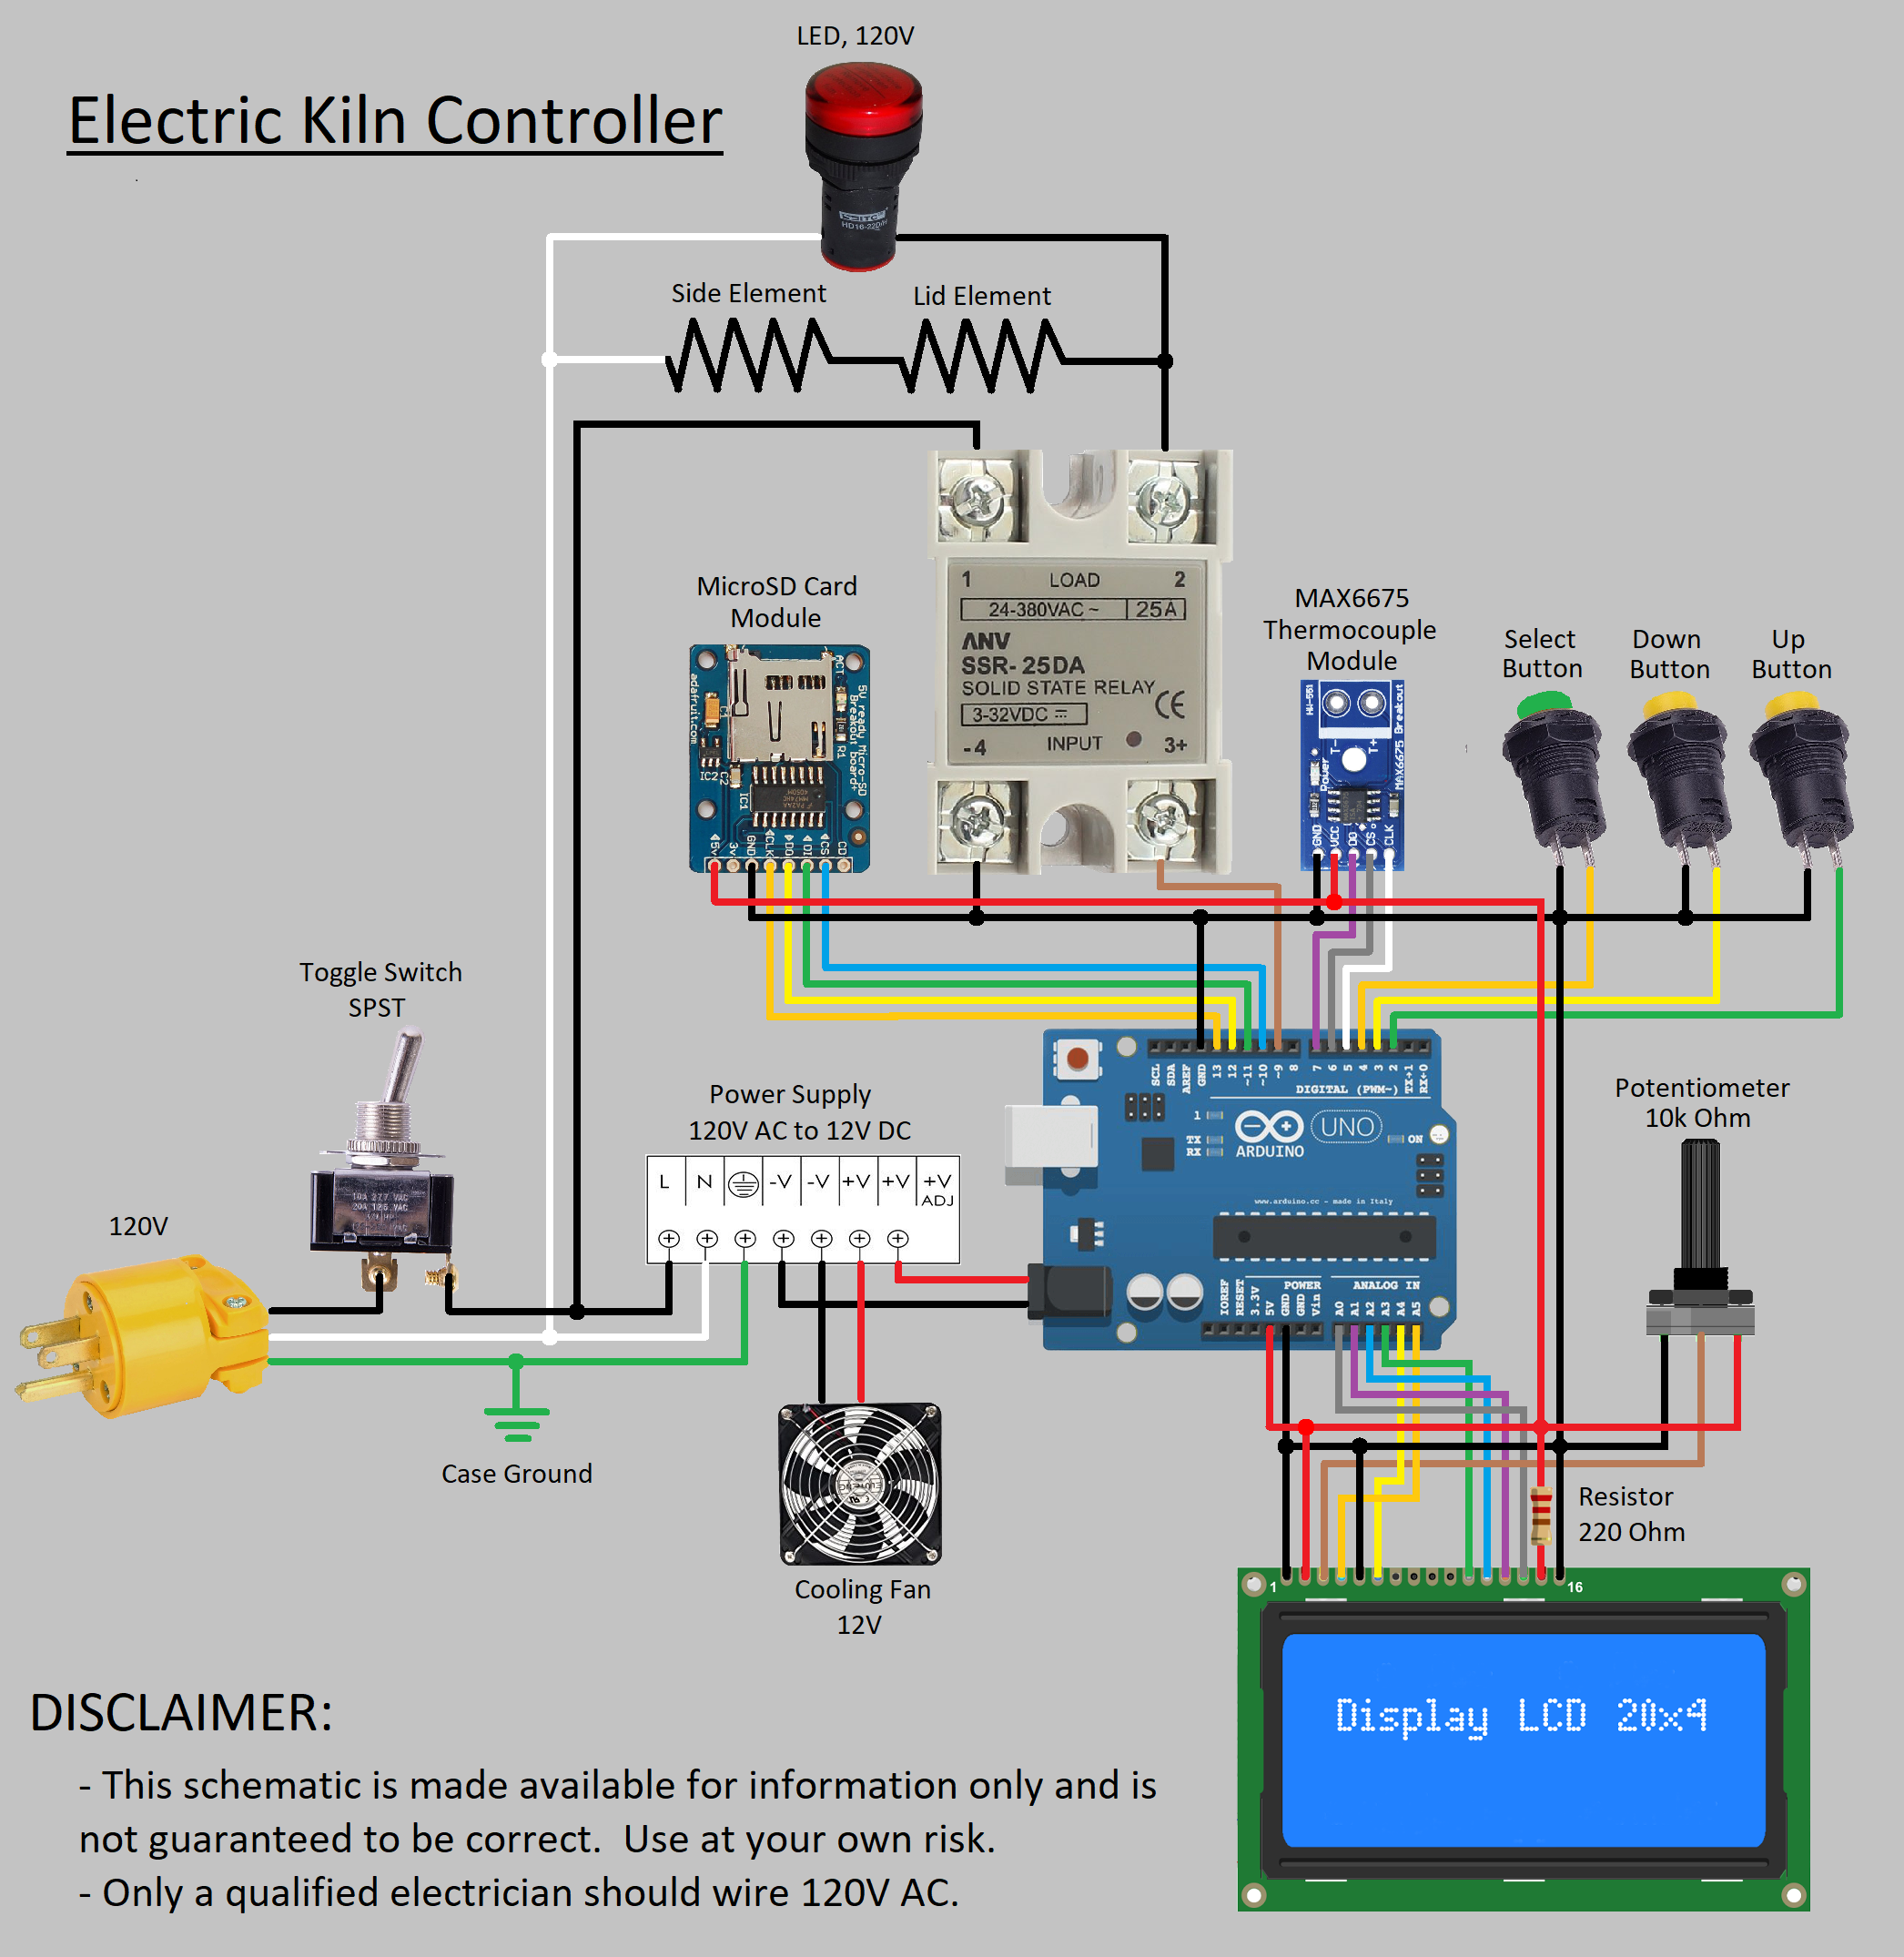 [SCHEMATICS_4NL]  Electric Kiln Controller - Arduino Project Hub | Wiring Diagram For Electric Kiln |  | Arduino Create